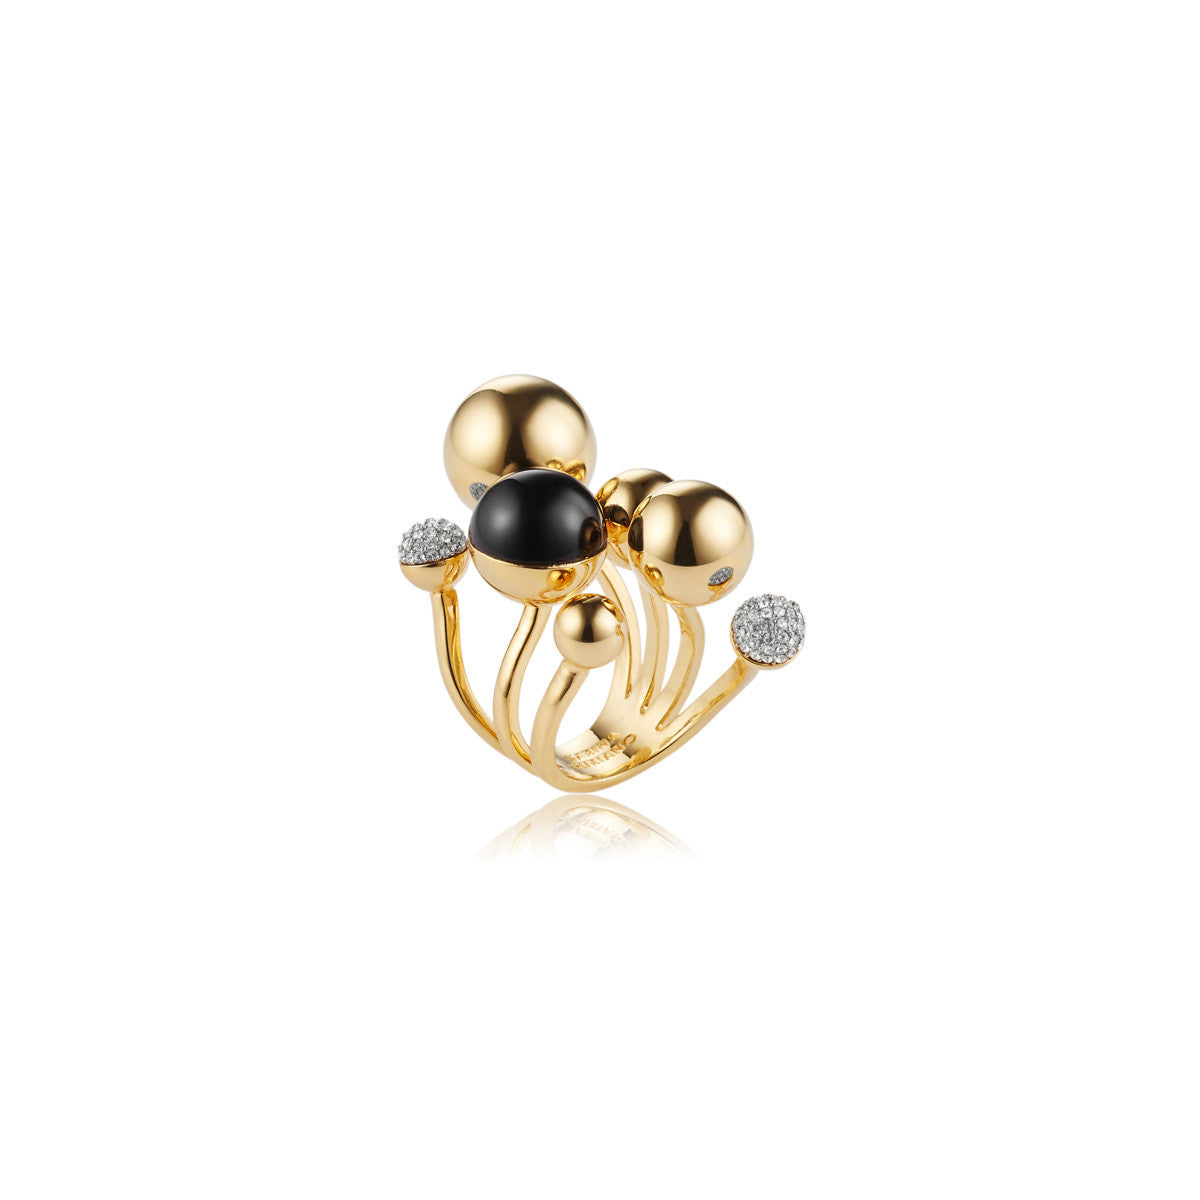 Solid brass, 18K gold plated Stellatus ring is adorned with clusters of gleaming metal, black onyx and Swarovski® crystal pavè spheres – front